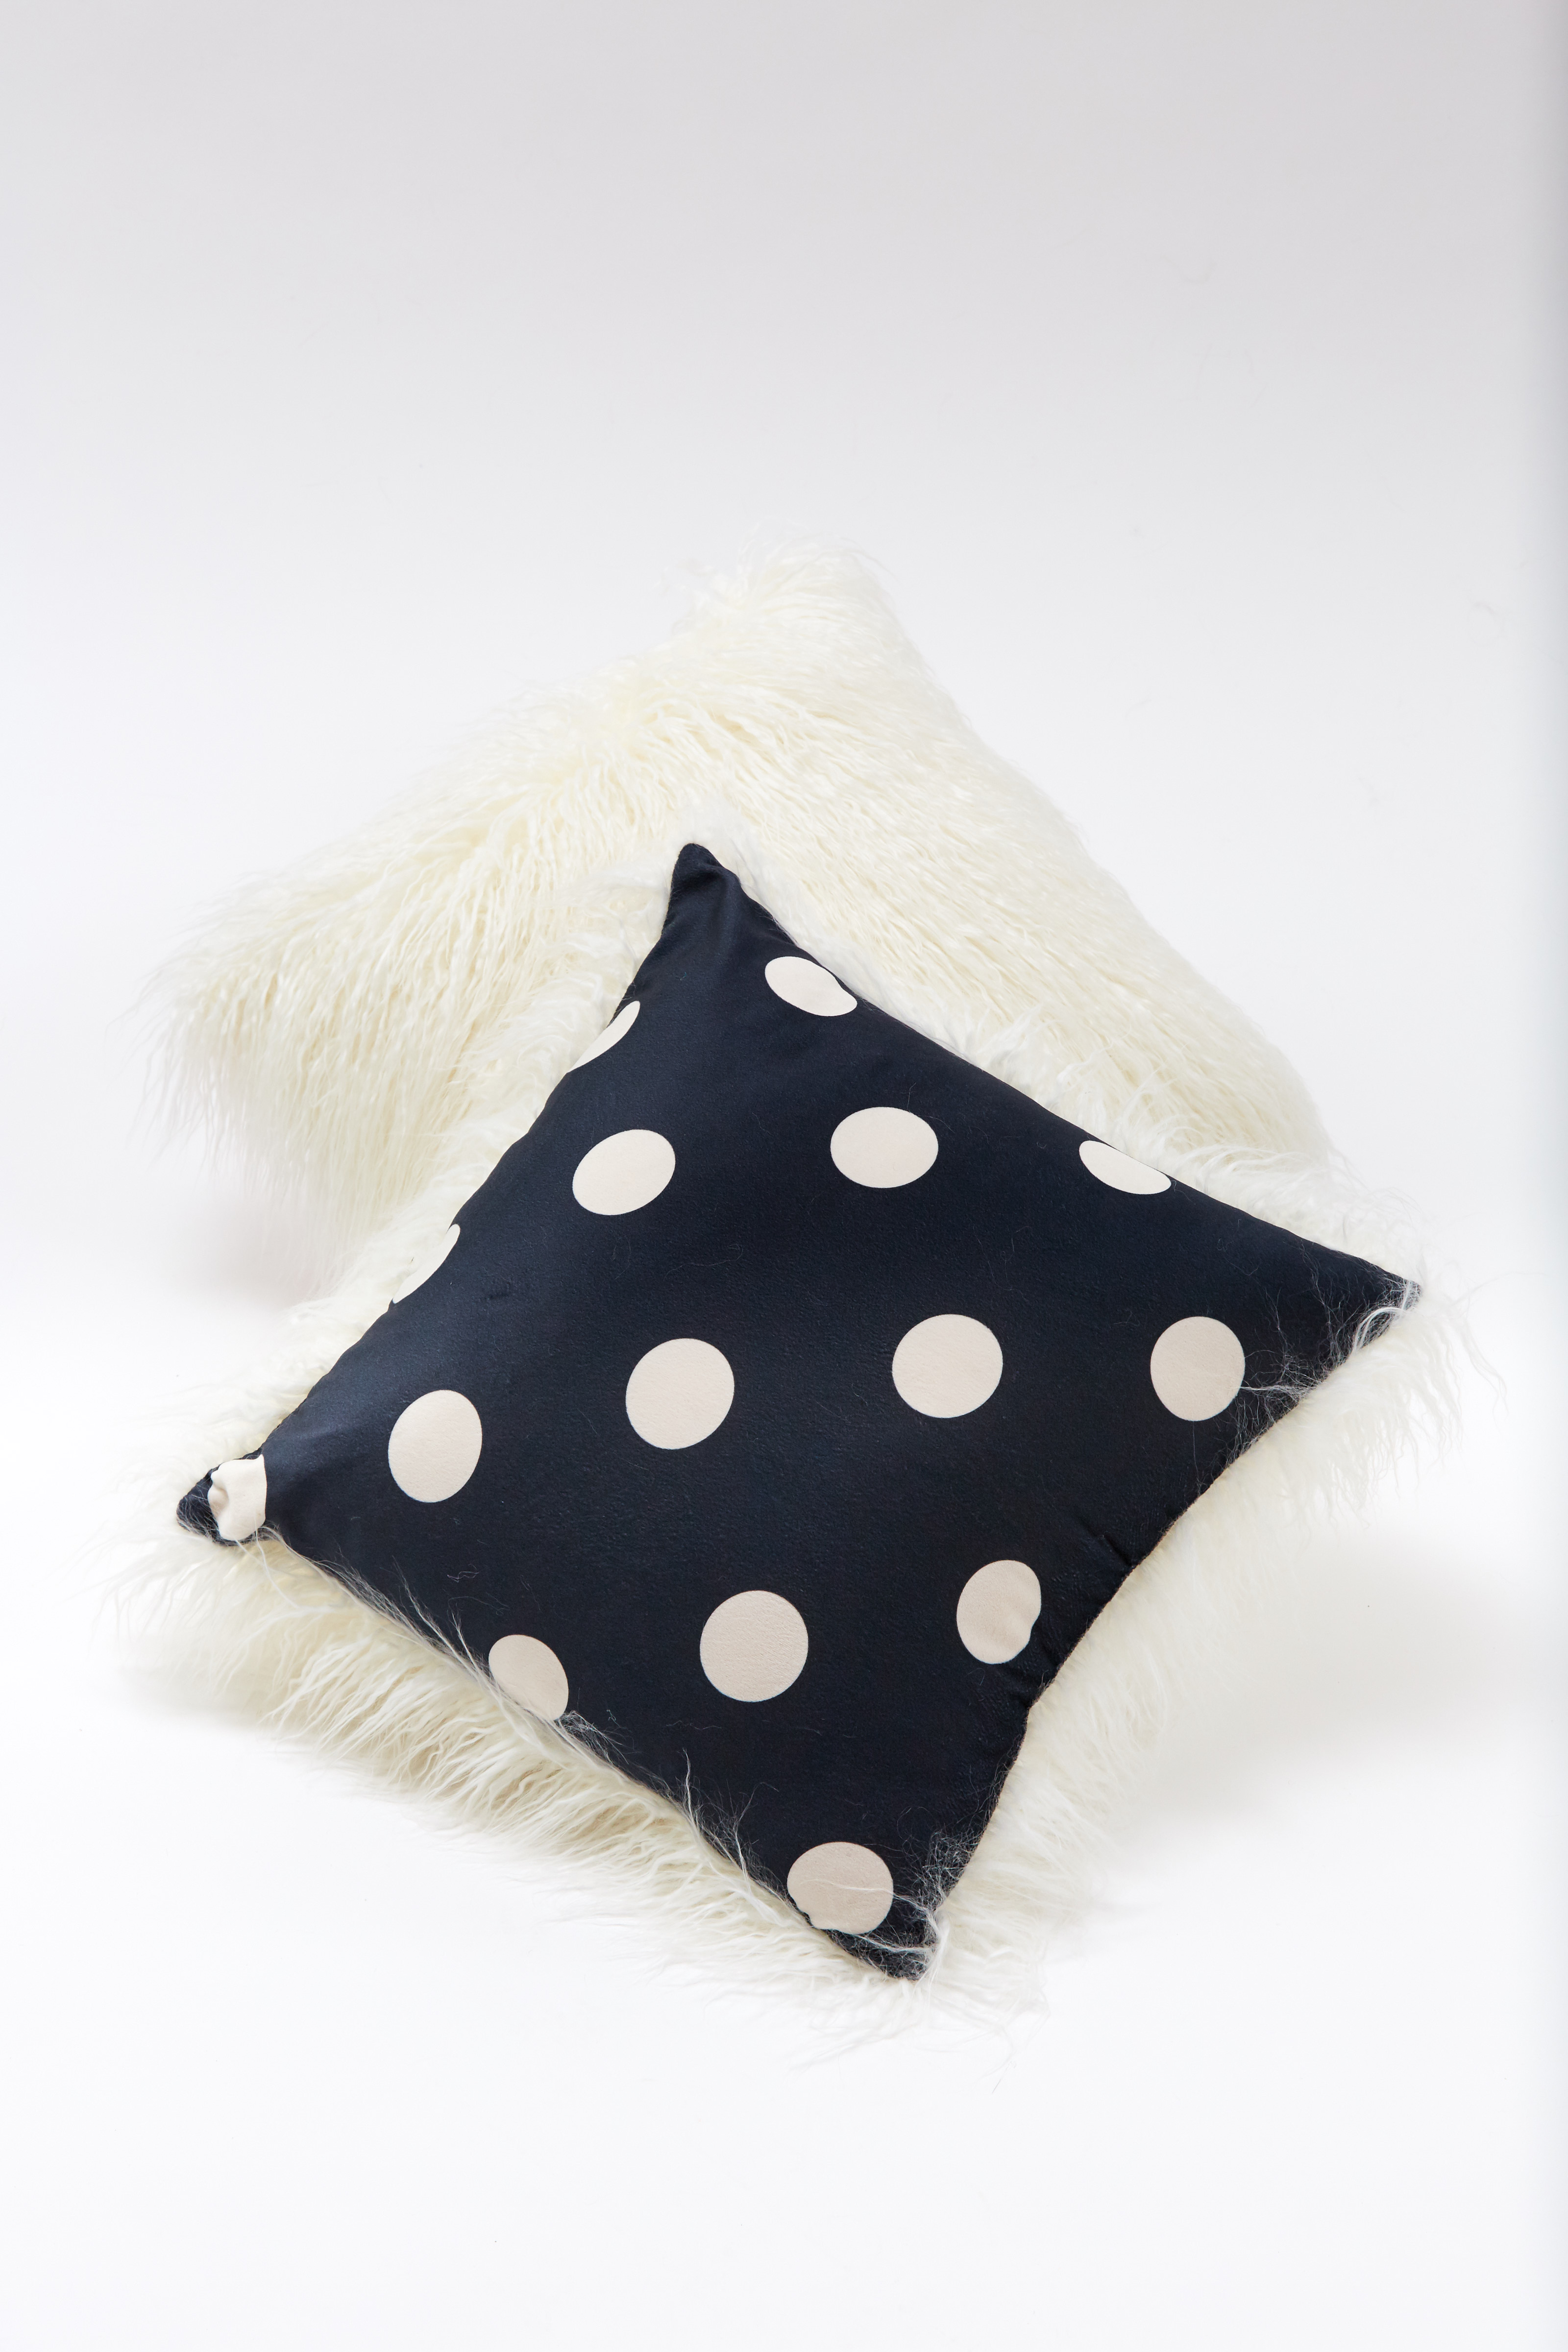 Pillow - Navy Polkadot by Maison Atia on curated-crowd.com